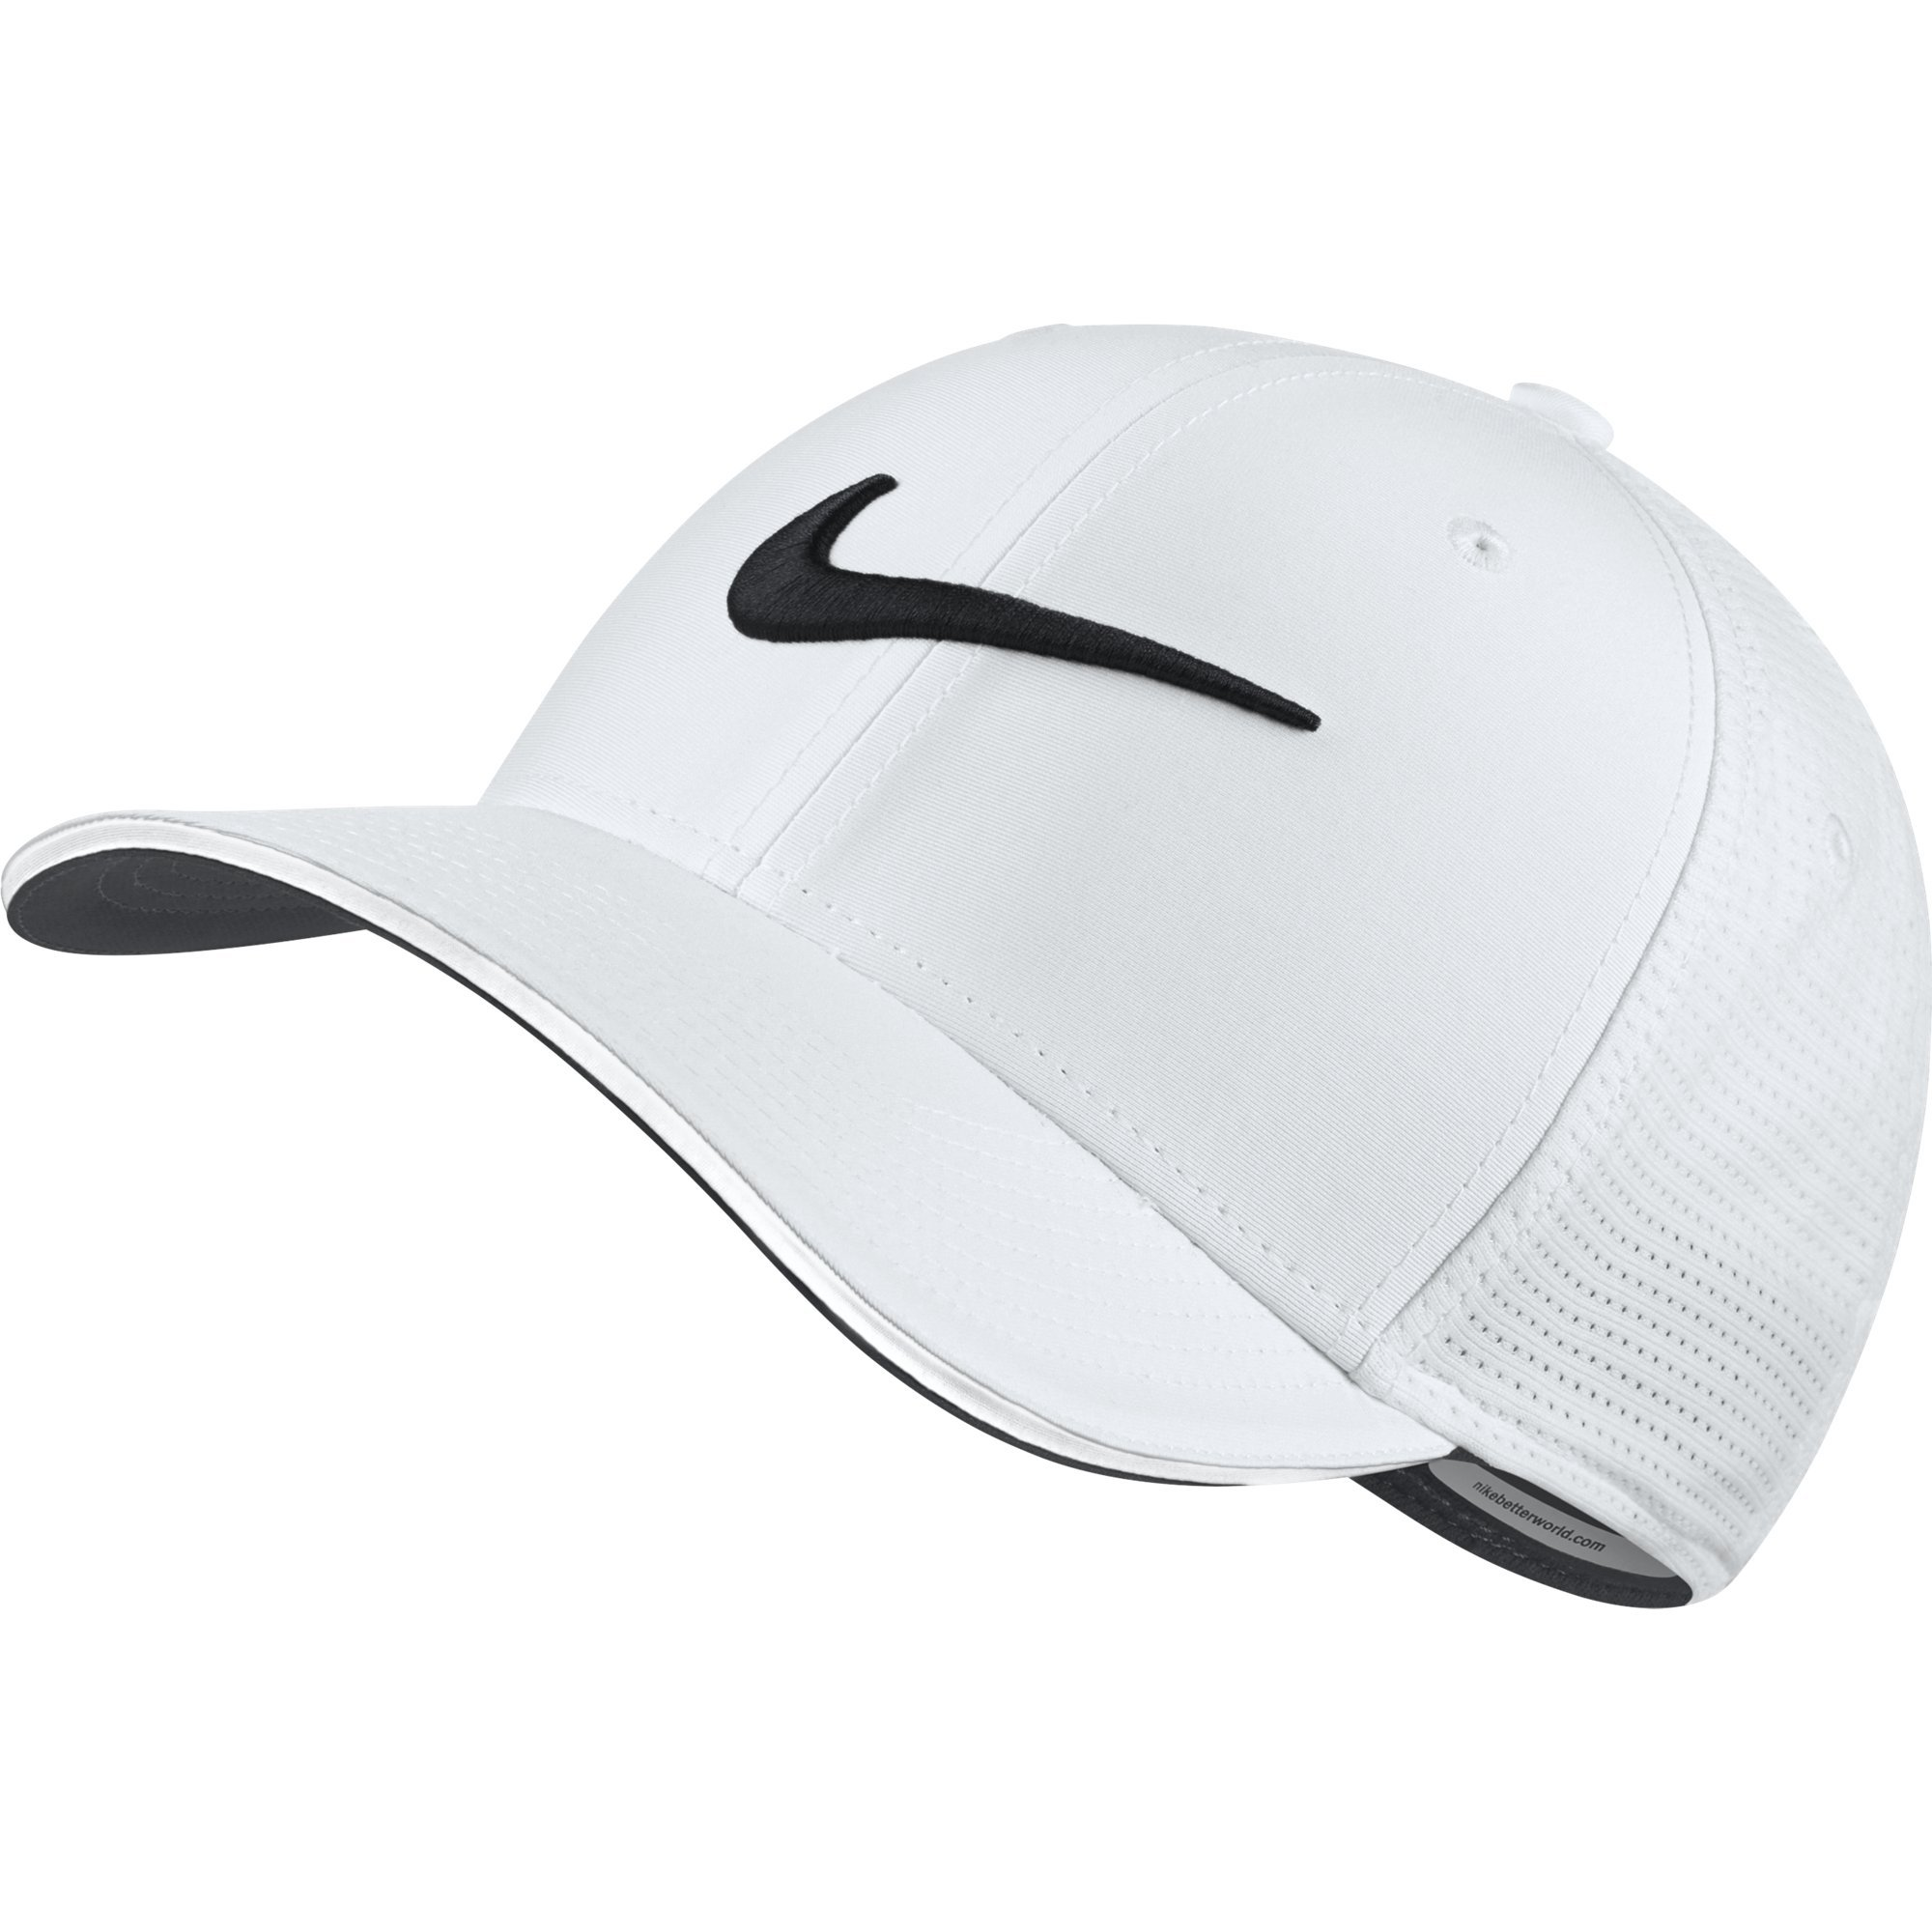 NIKE Unisex Classic 99 Mesh Golf Cap, White/White/Anthracite/Black, Medium/Large